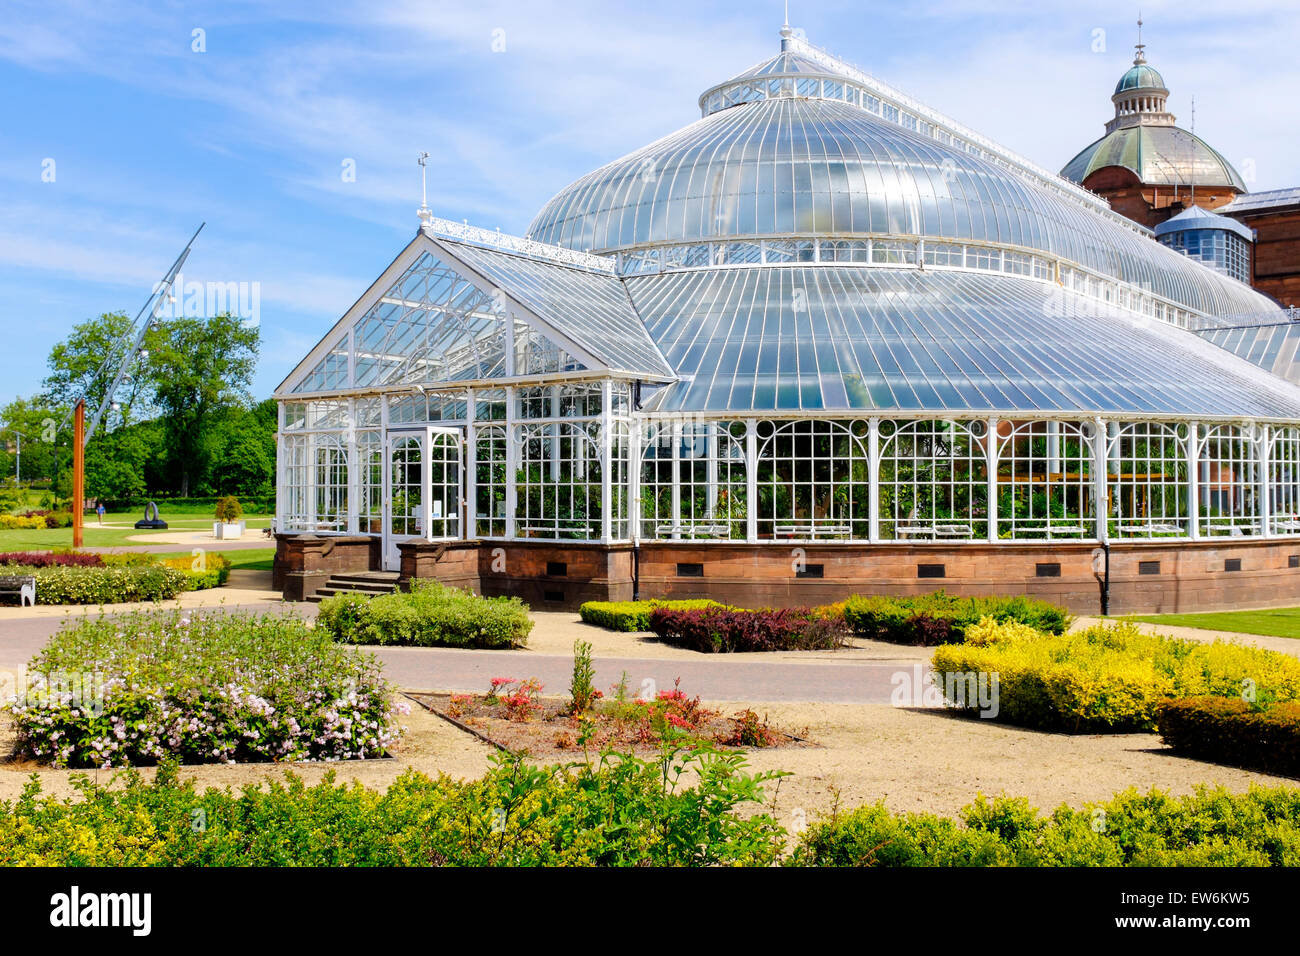 Conservatory At The Botanical Garden Section Of The Peoples Palace Housing  Exotic Plants, Glasgow Green, Glasgow, Scotland.